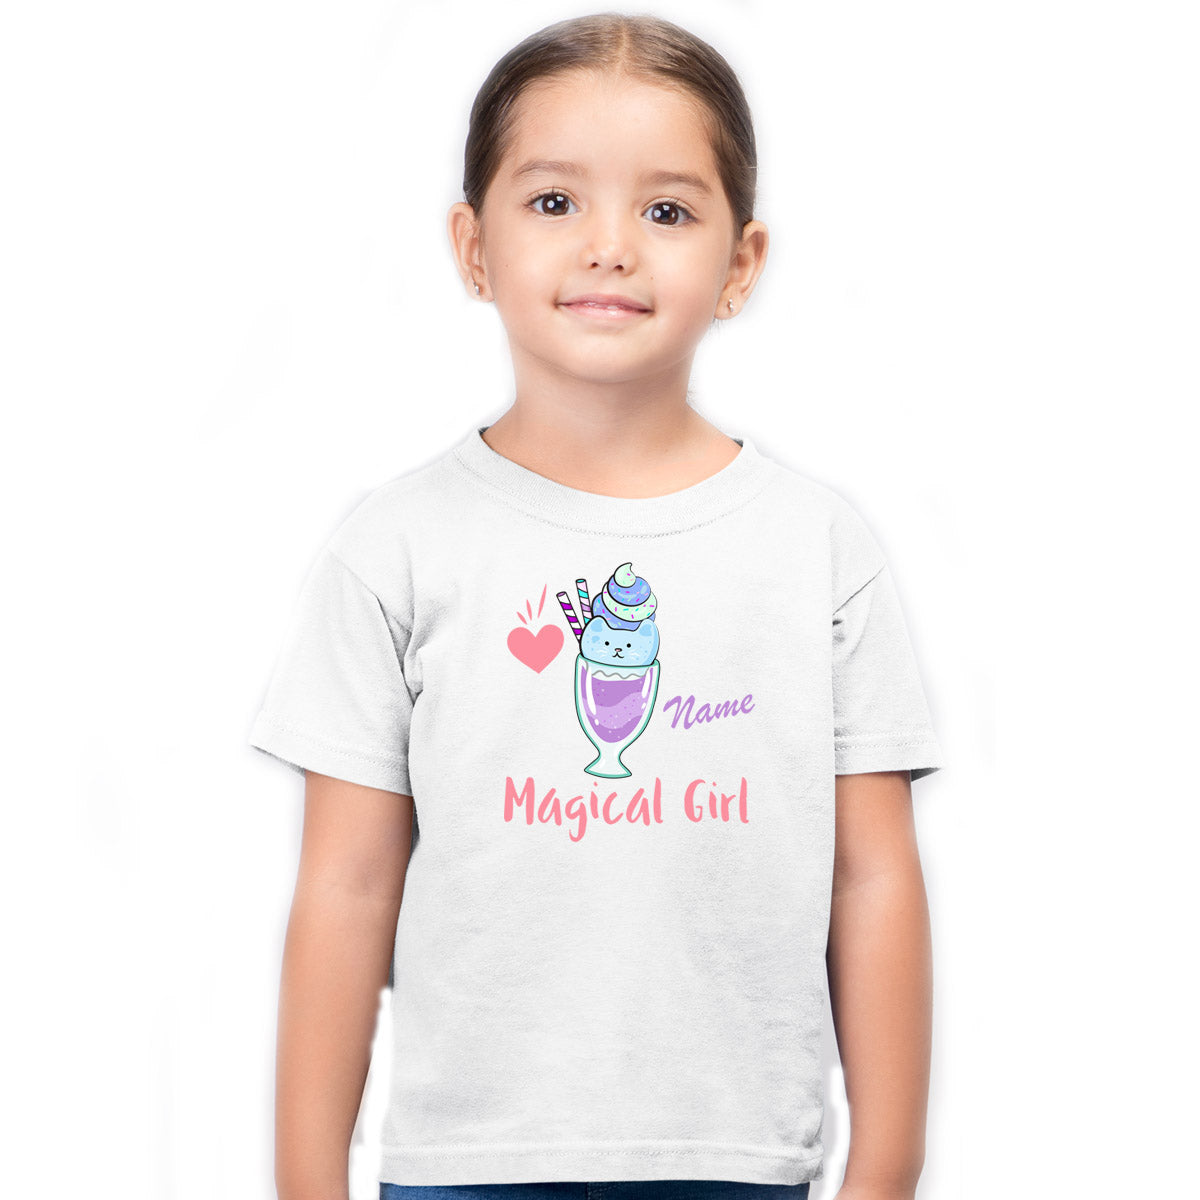 Sprinklecart Personalized Name Printed Magical Girl Printed Kids Poly-Cotton T Shirt (White)